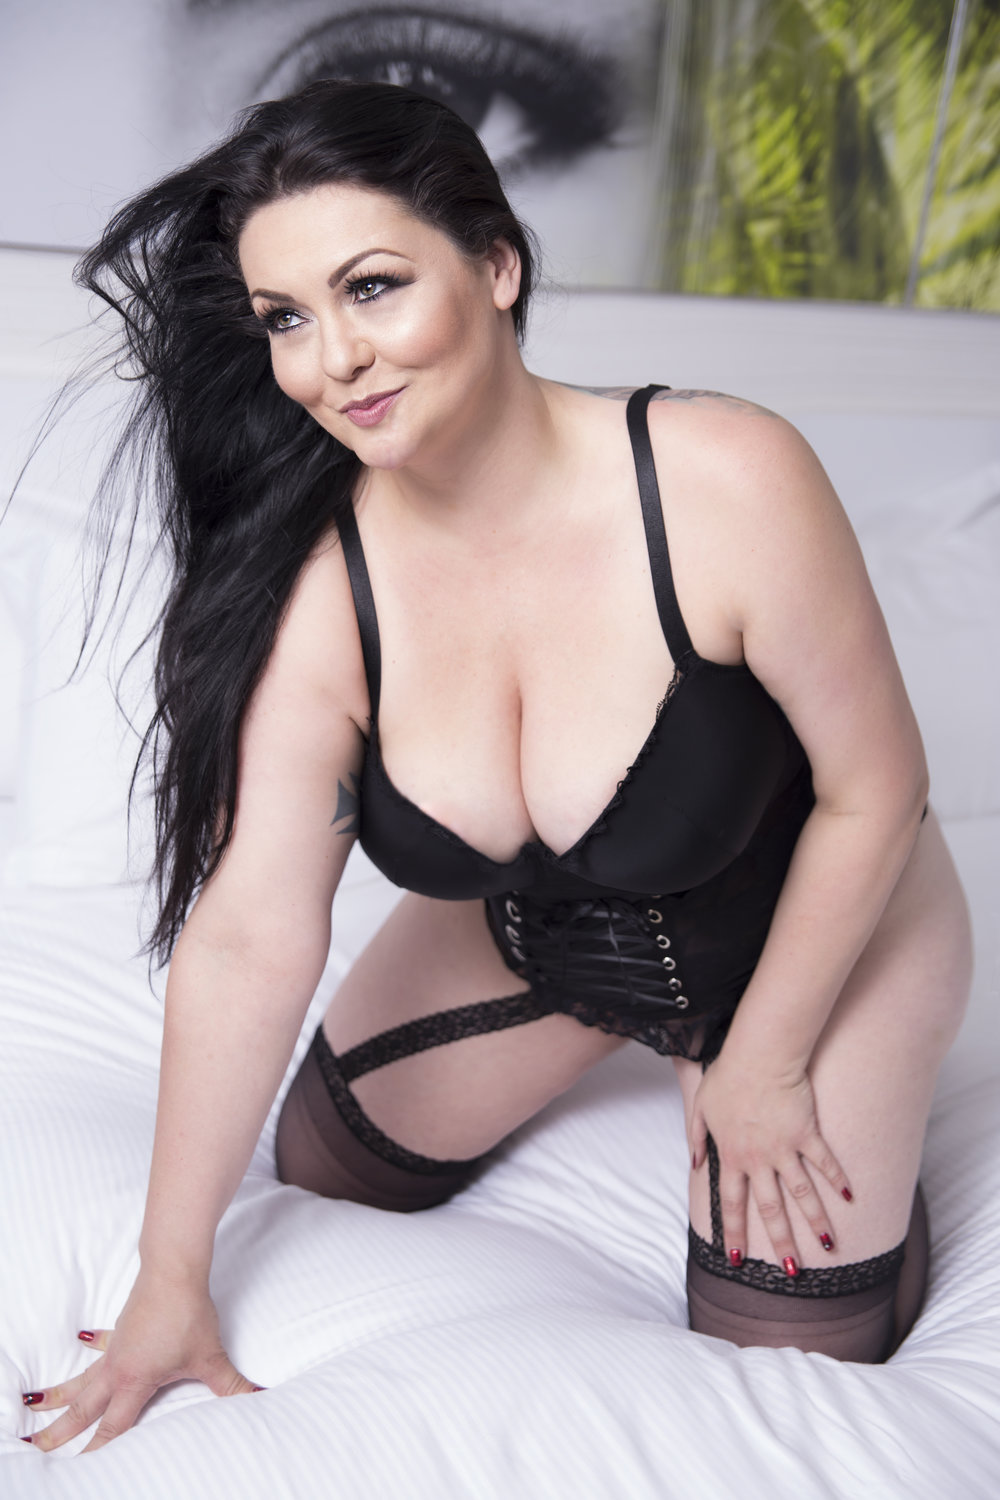 las_vegas_boudoir_photography_inclusive_package_photographer_casey_jade_6.jpg